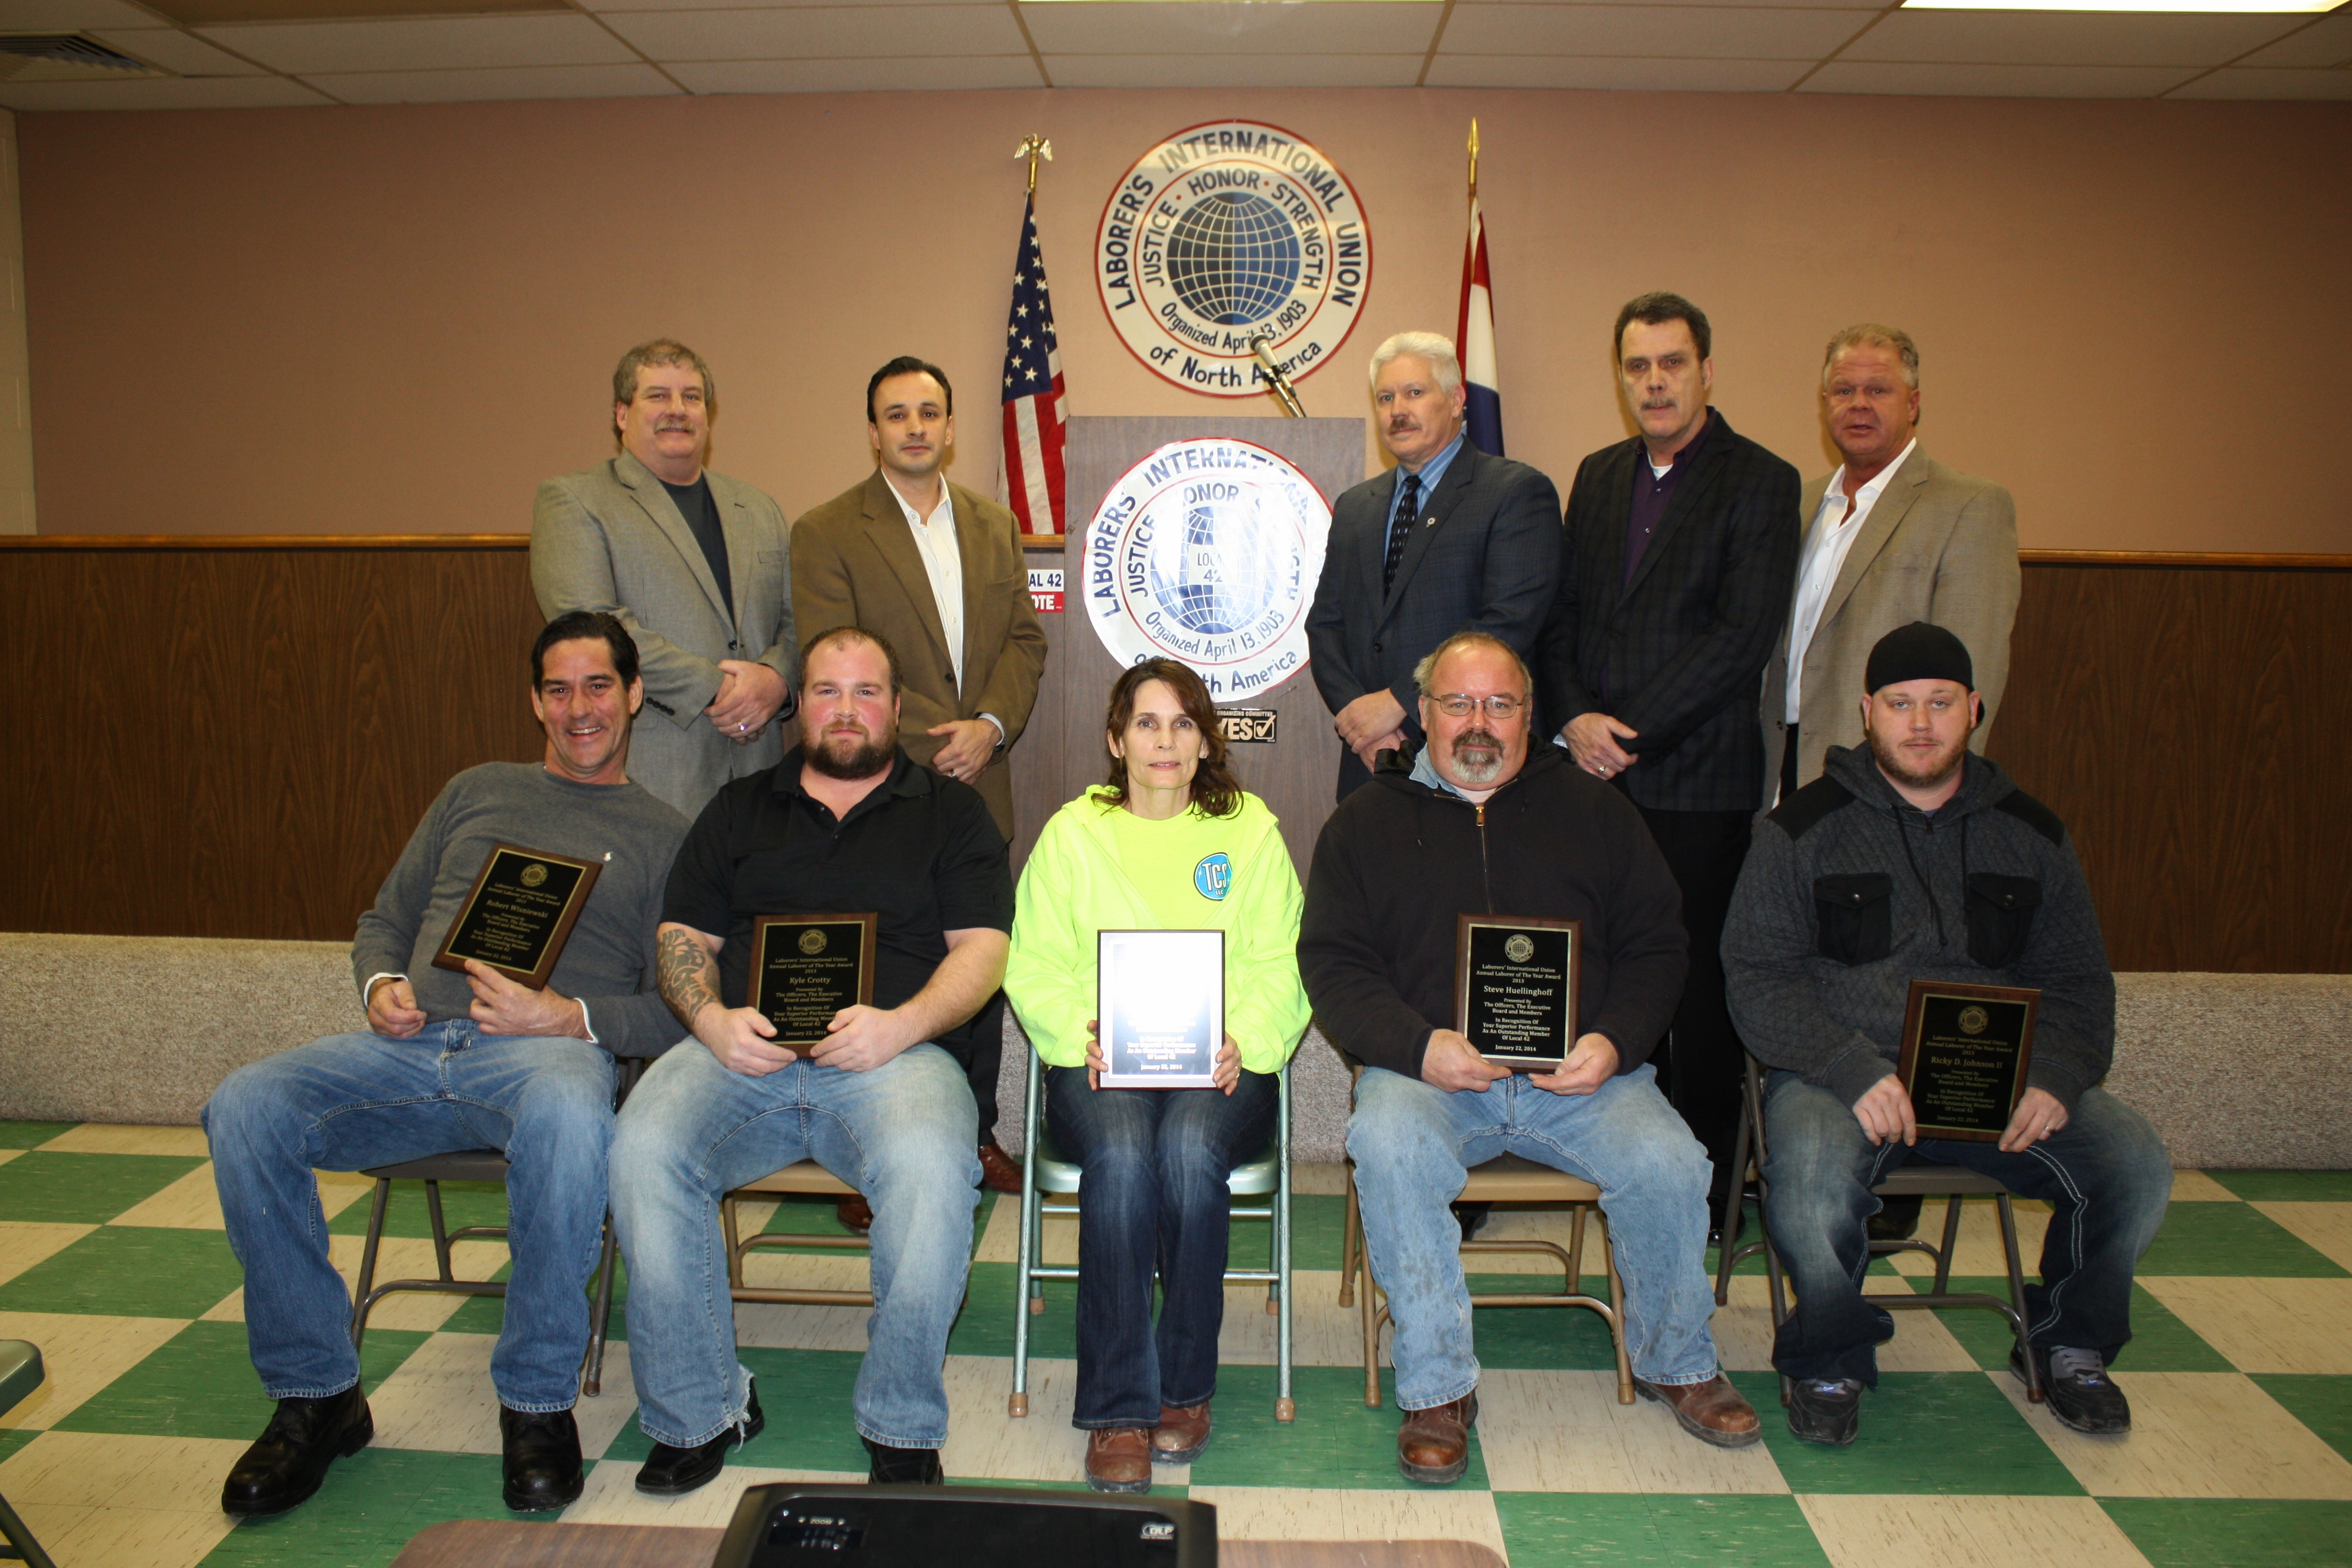 Laborers 42 Laborers of the year